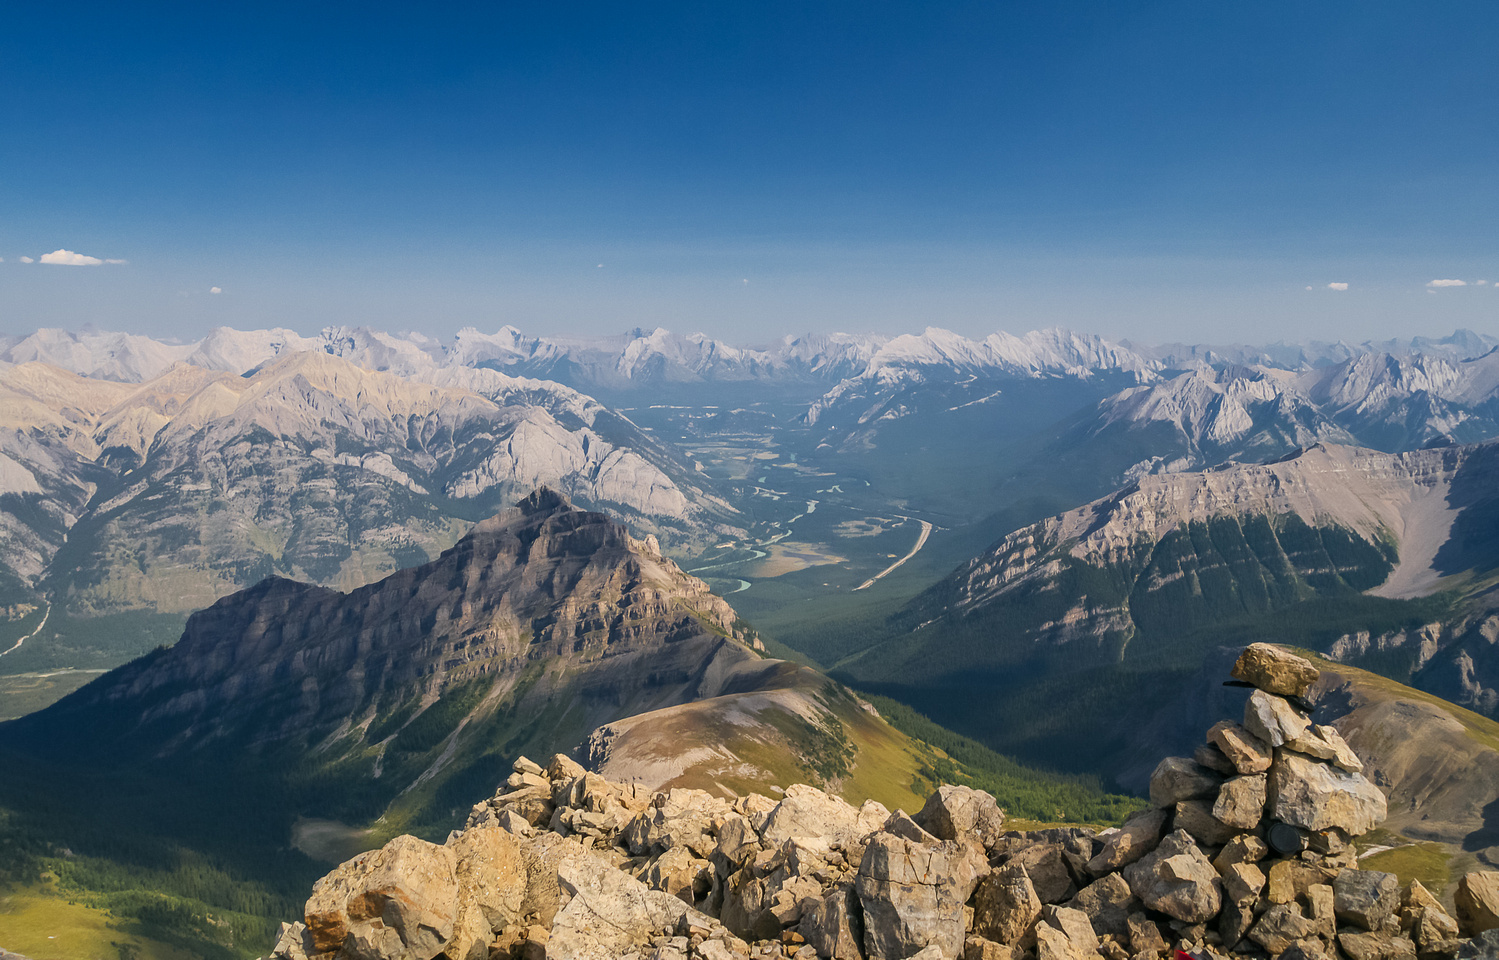 Looking down on the (tiny) Massive Mountain and down the Bow River Valley towards Banff.